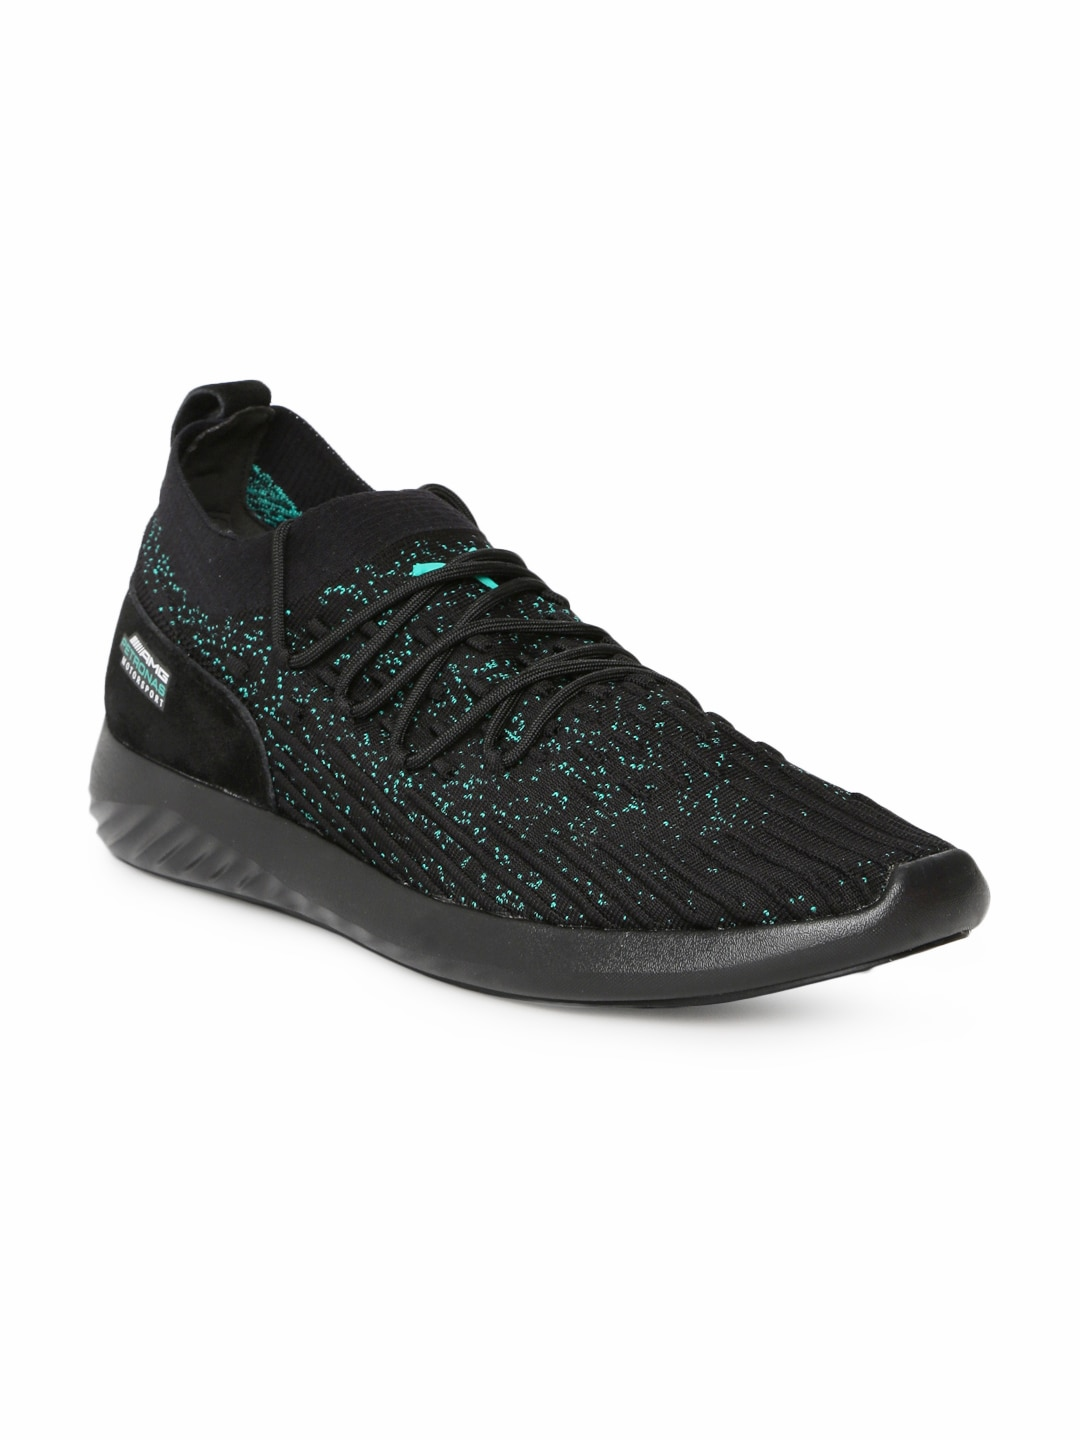 competitive price a141d 9d3d4 Puma Casual Shoes - Casual Puma Shoes Online for Men Women   Myntra